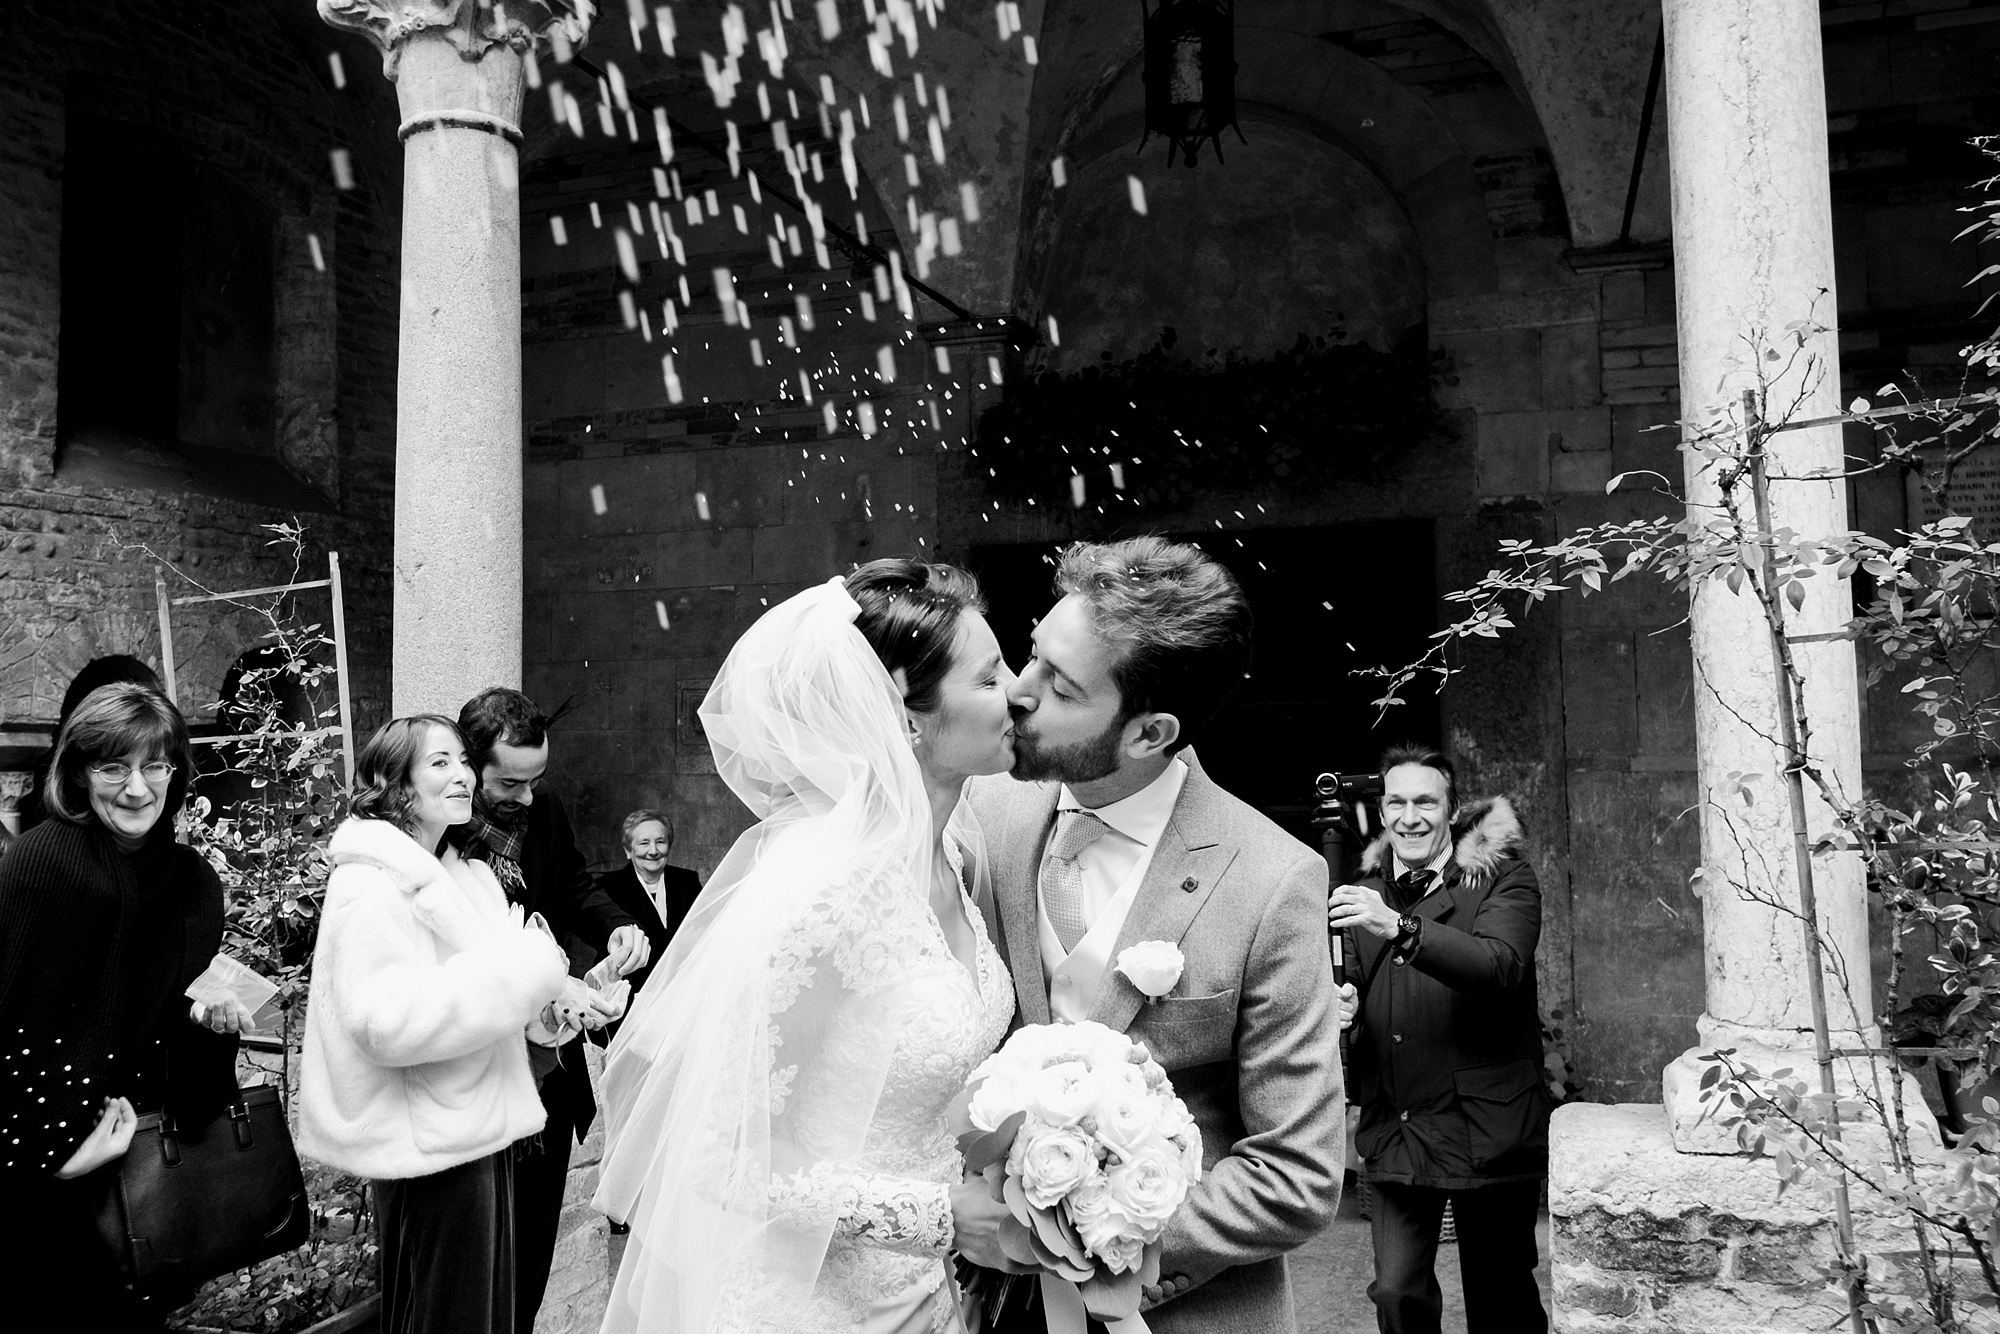 Christmas wedding in Verona